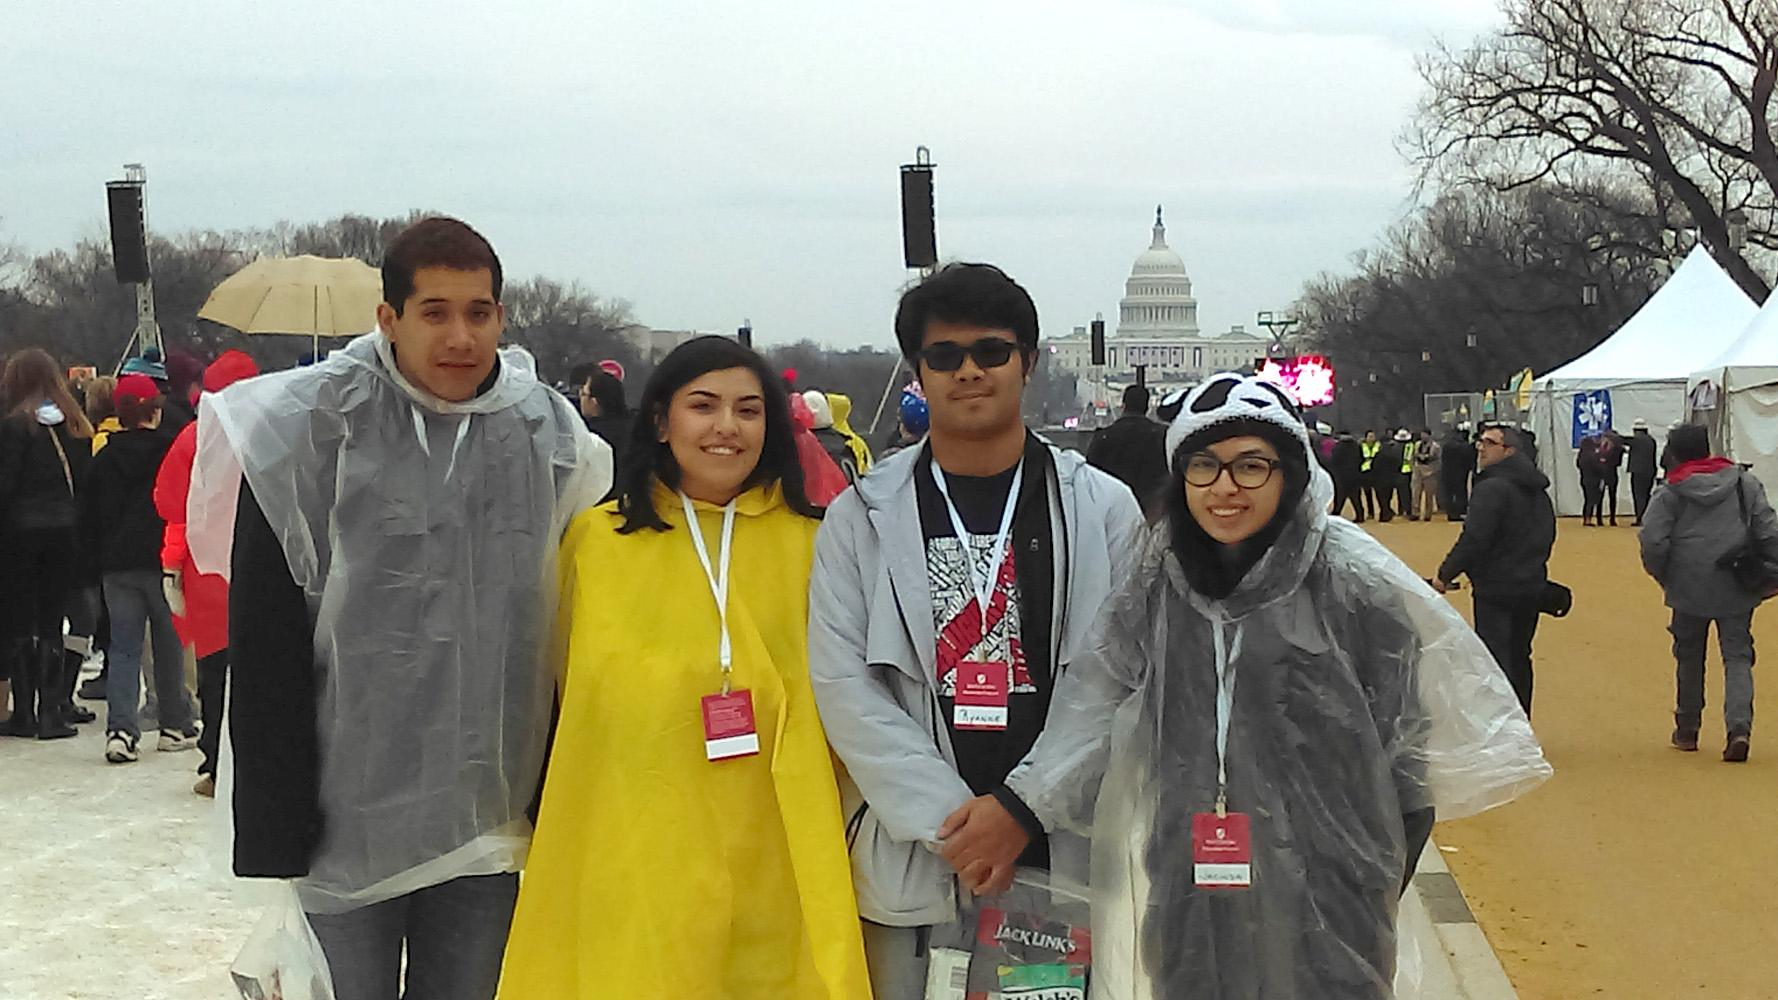 Gabriel Salazar, Gabrielle Ramos, Ryanne Mora and Jacinda Florez stand in front of the US Capital building as they wait for the Presidential Inauguration to get underway.